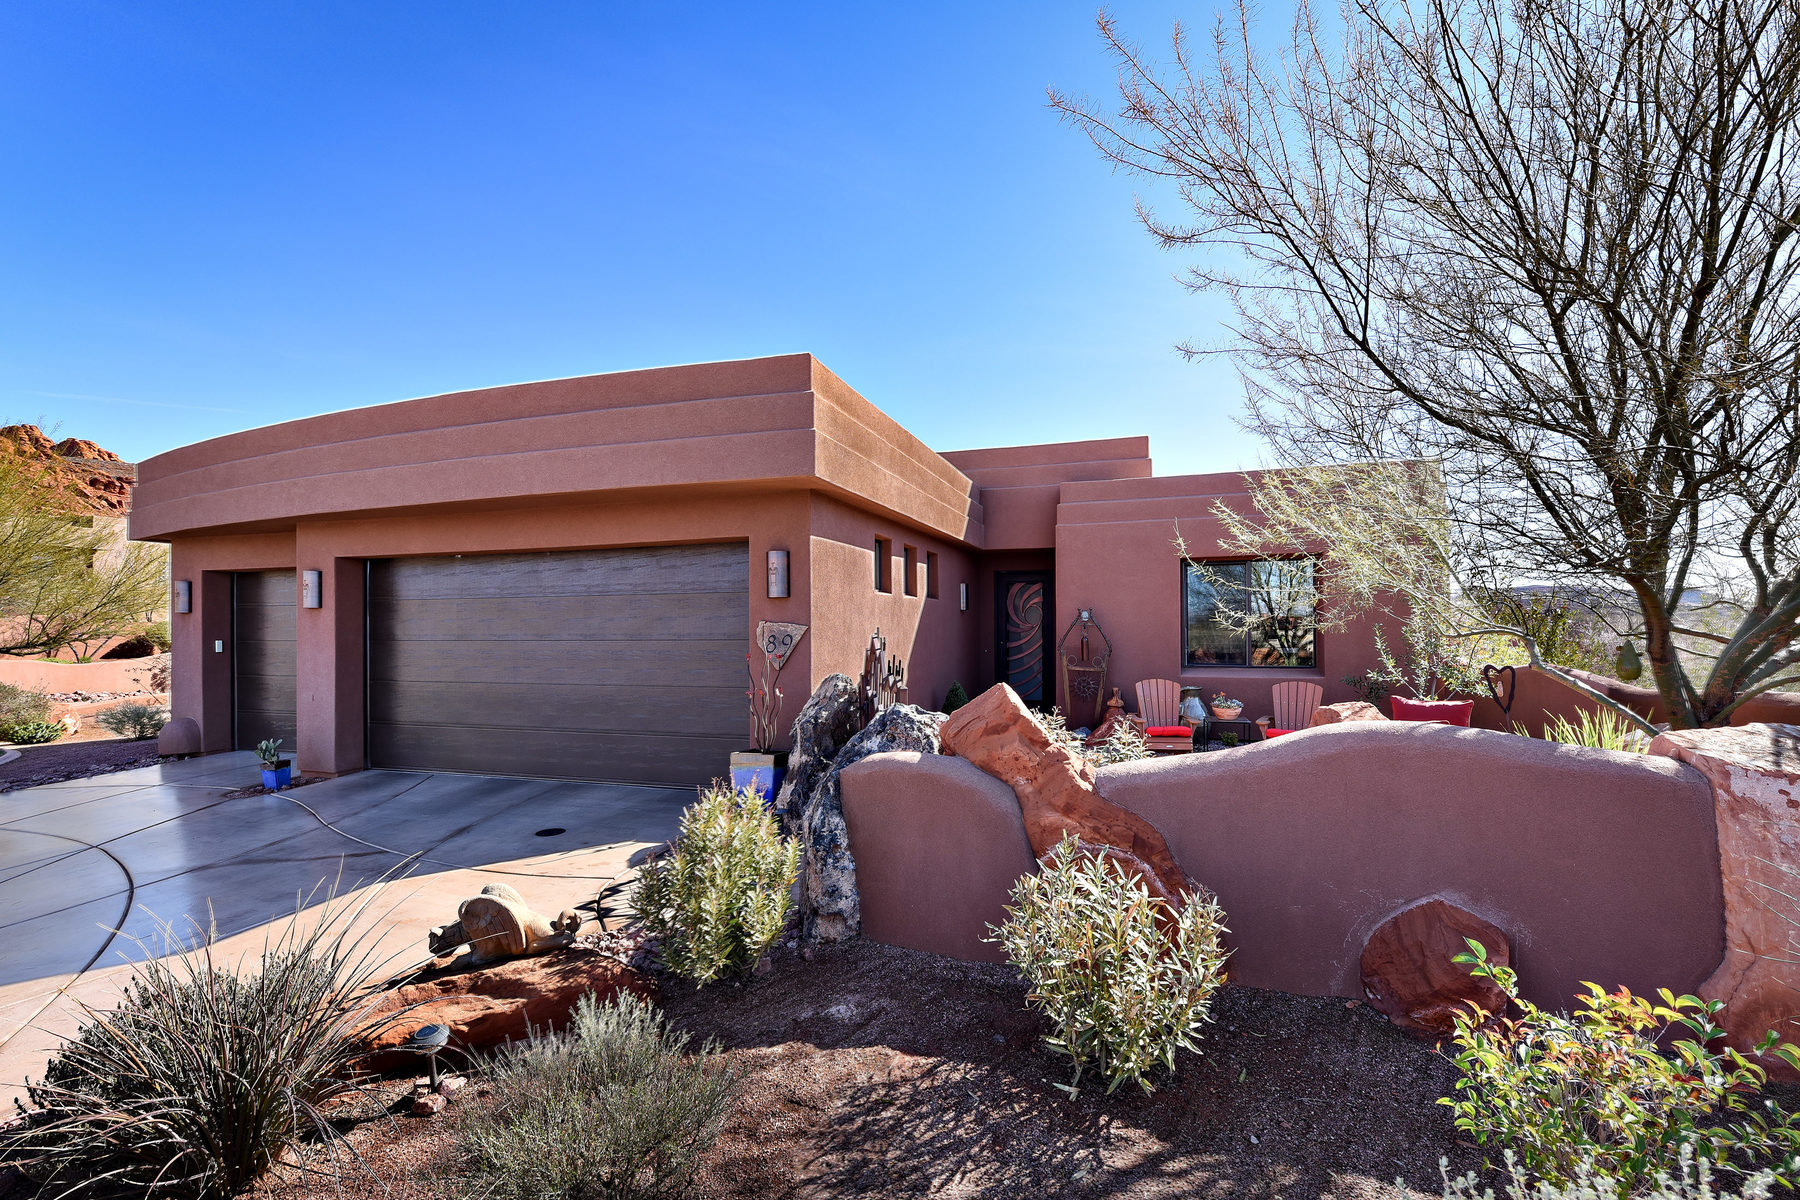 Single Family Home for Sale at Contemporary Home/Spectacular Views 2331 W Entrada Trail #89 St. George, Utah, 84770 United States